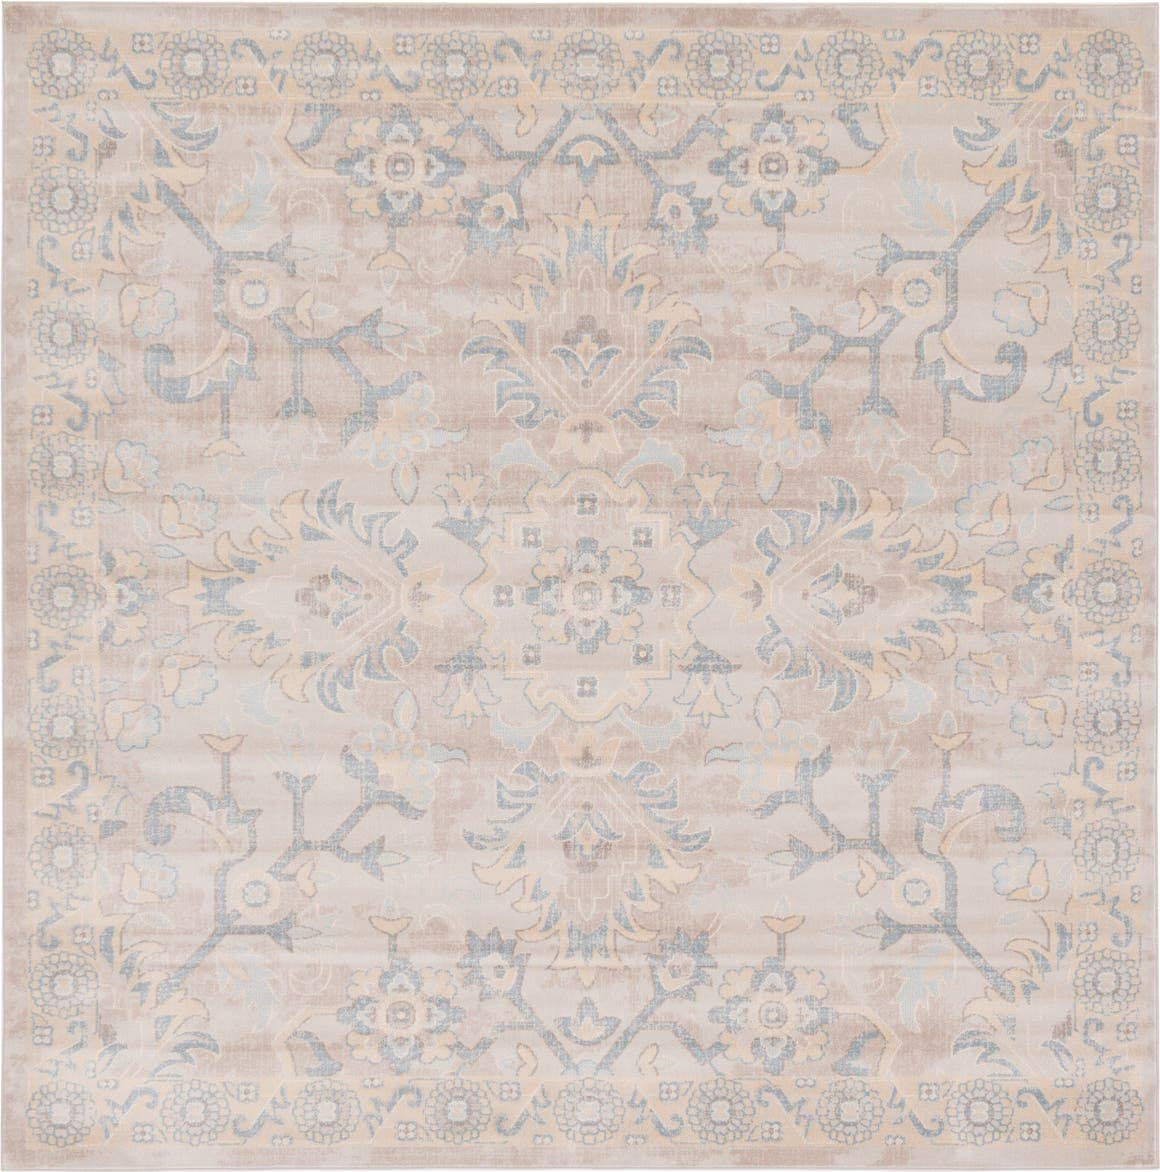 Unique Loom Paris Collection Pastel Tones Traditional Distressed Gray Square Rug 8 0 x 8 0